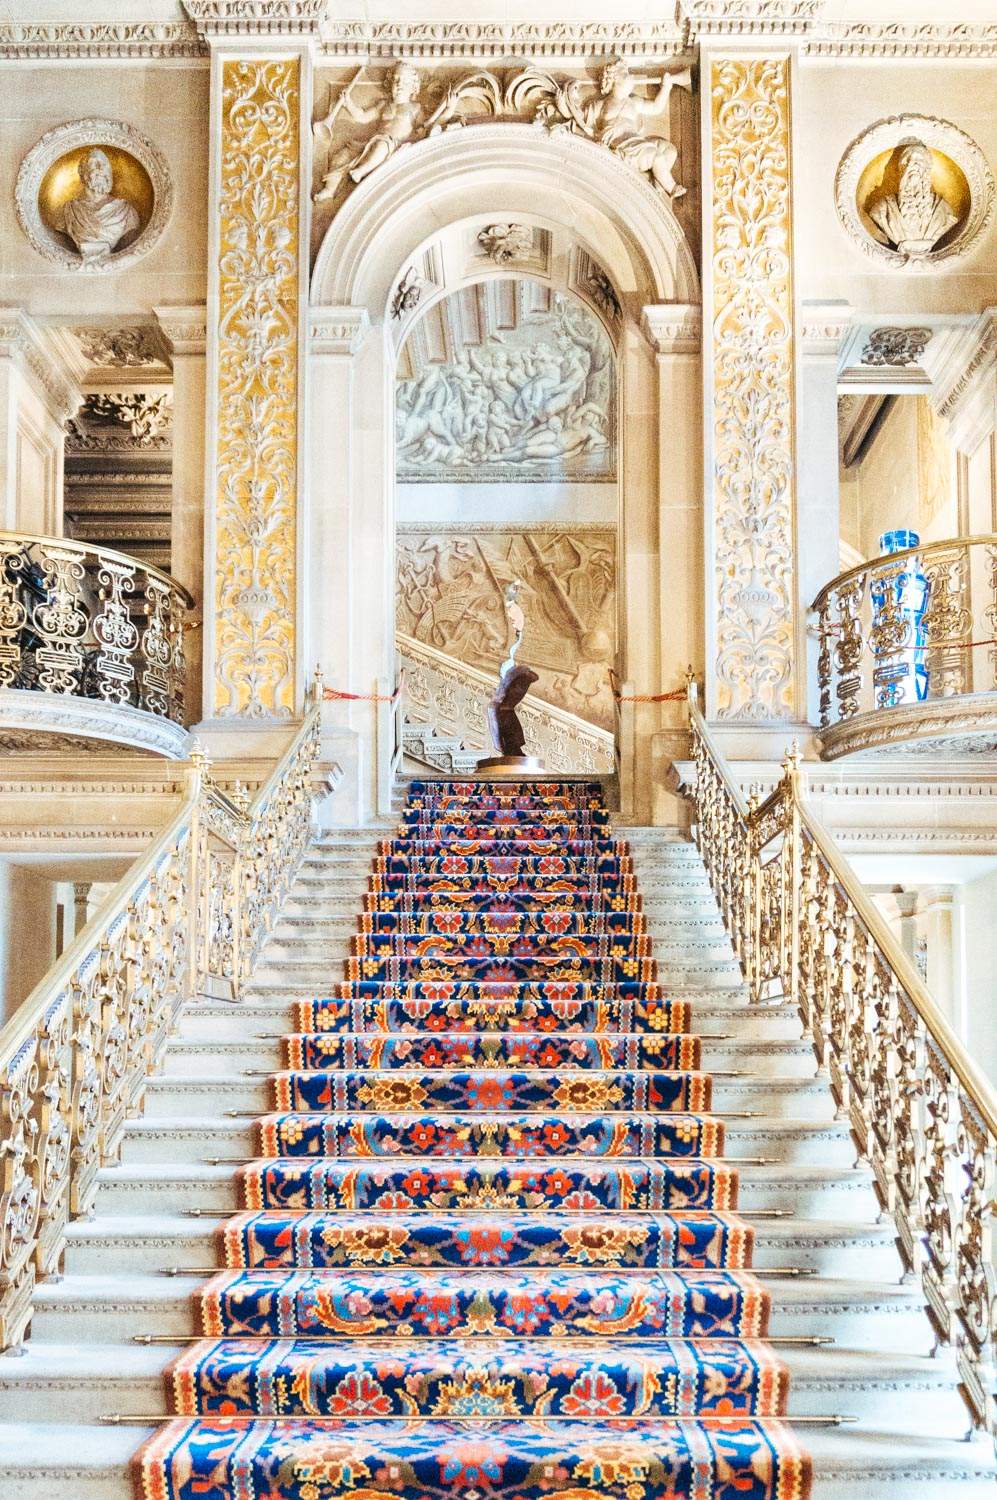 The absolutely breath-taking staircase